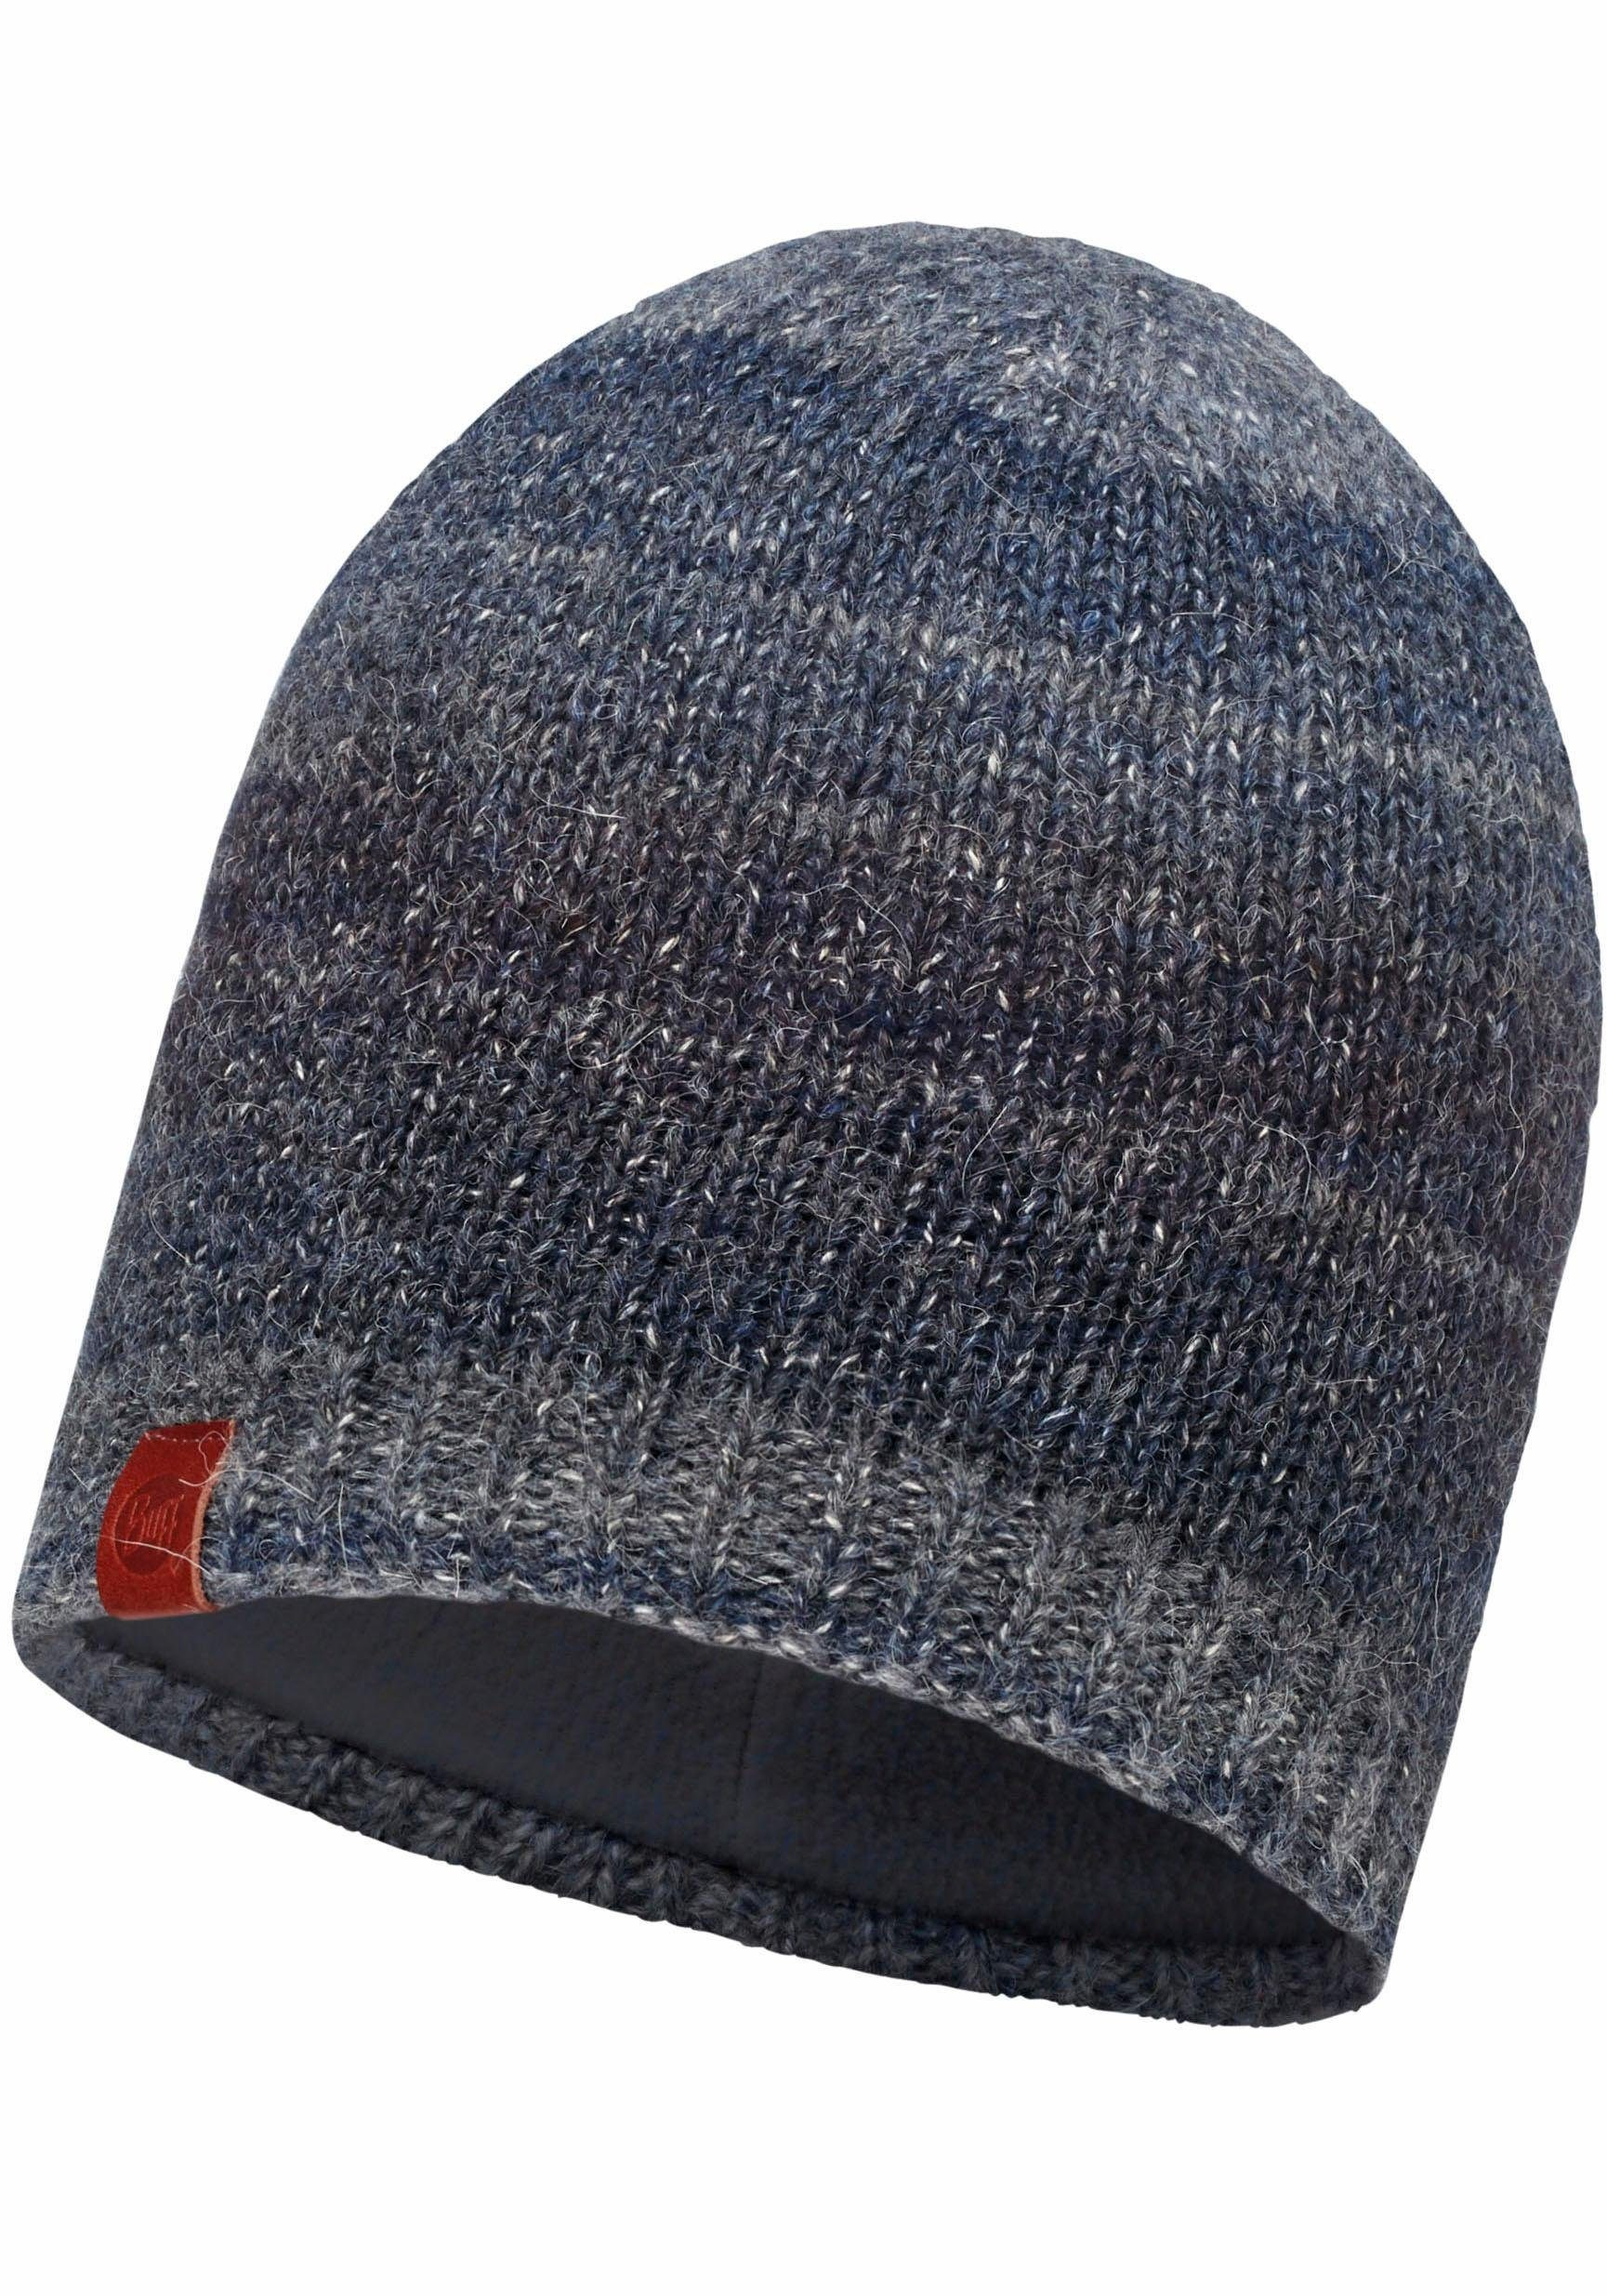 Buff Beanie »Knitted Polar Fleece Hat«, Mütze